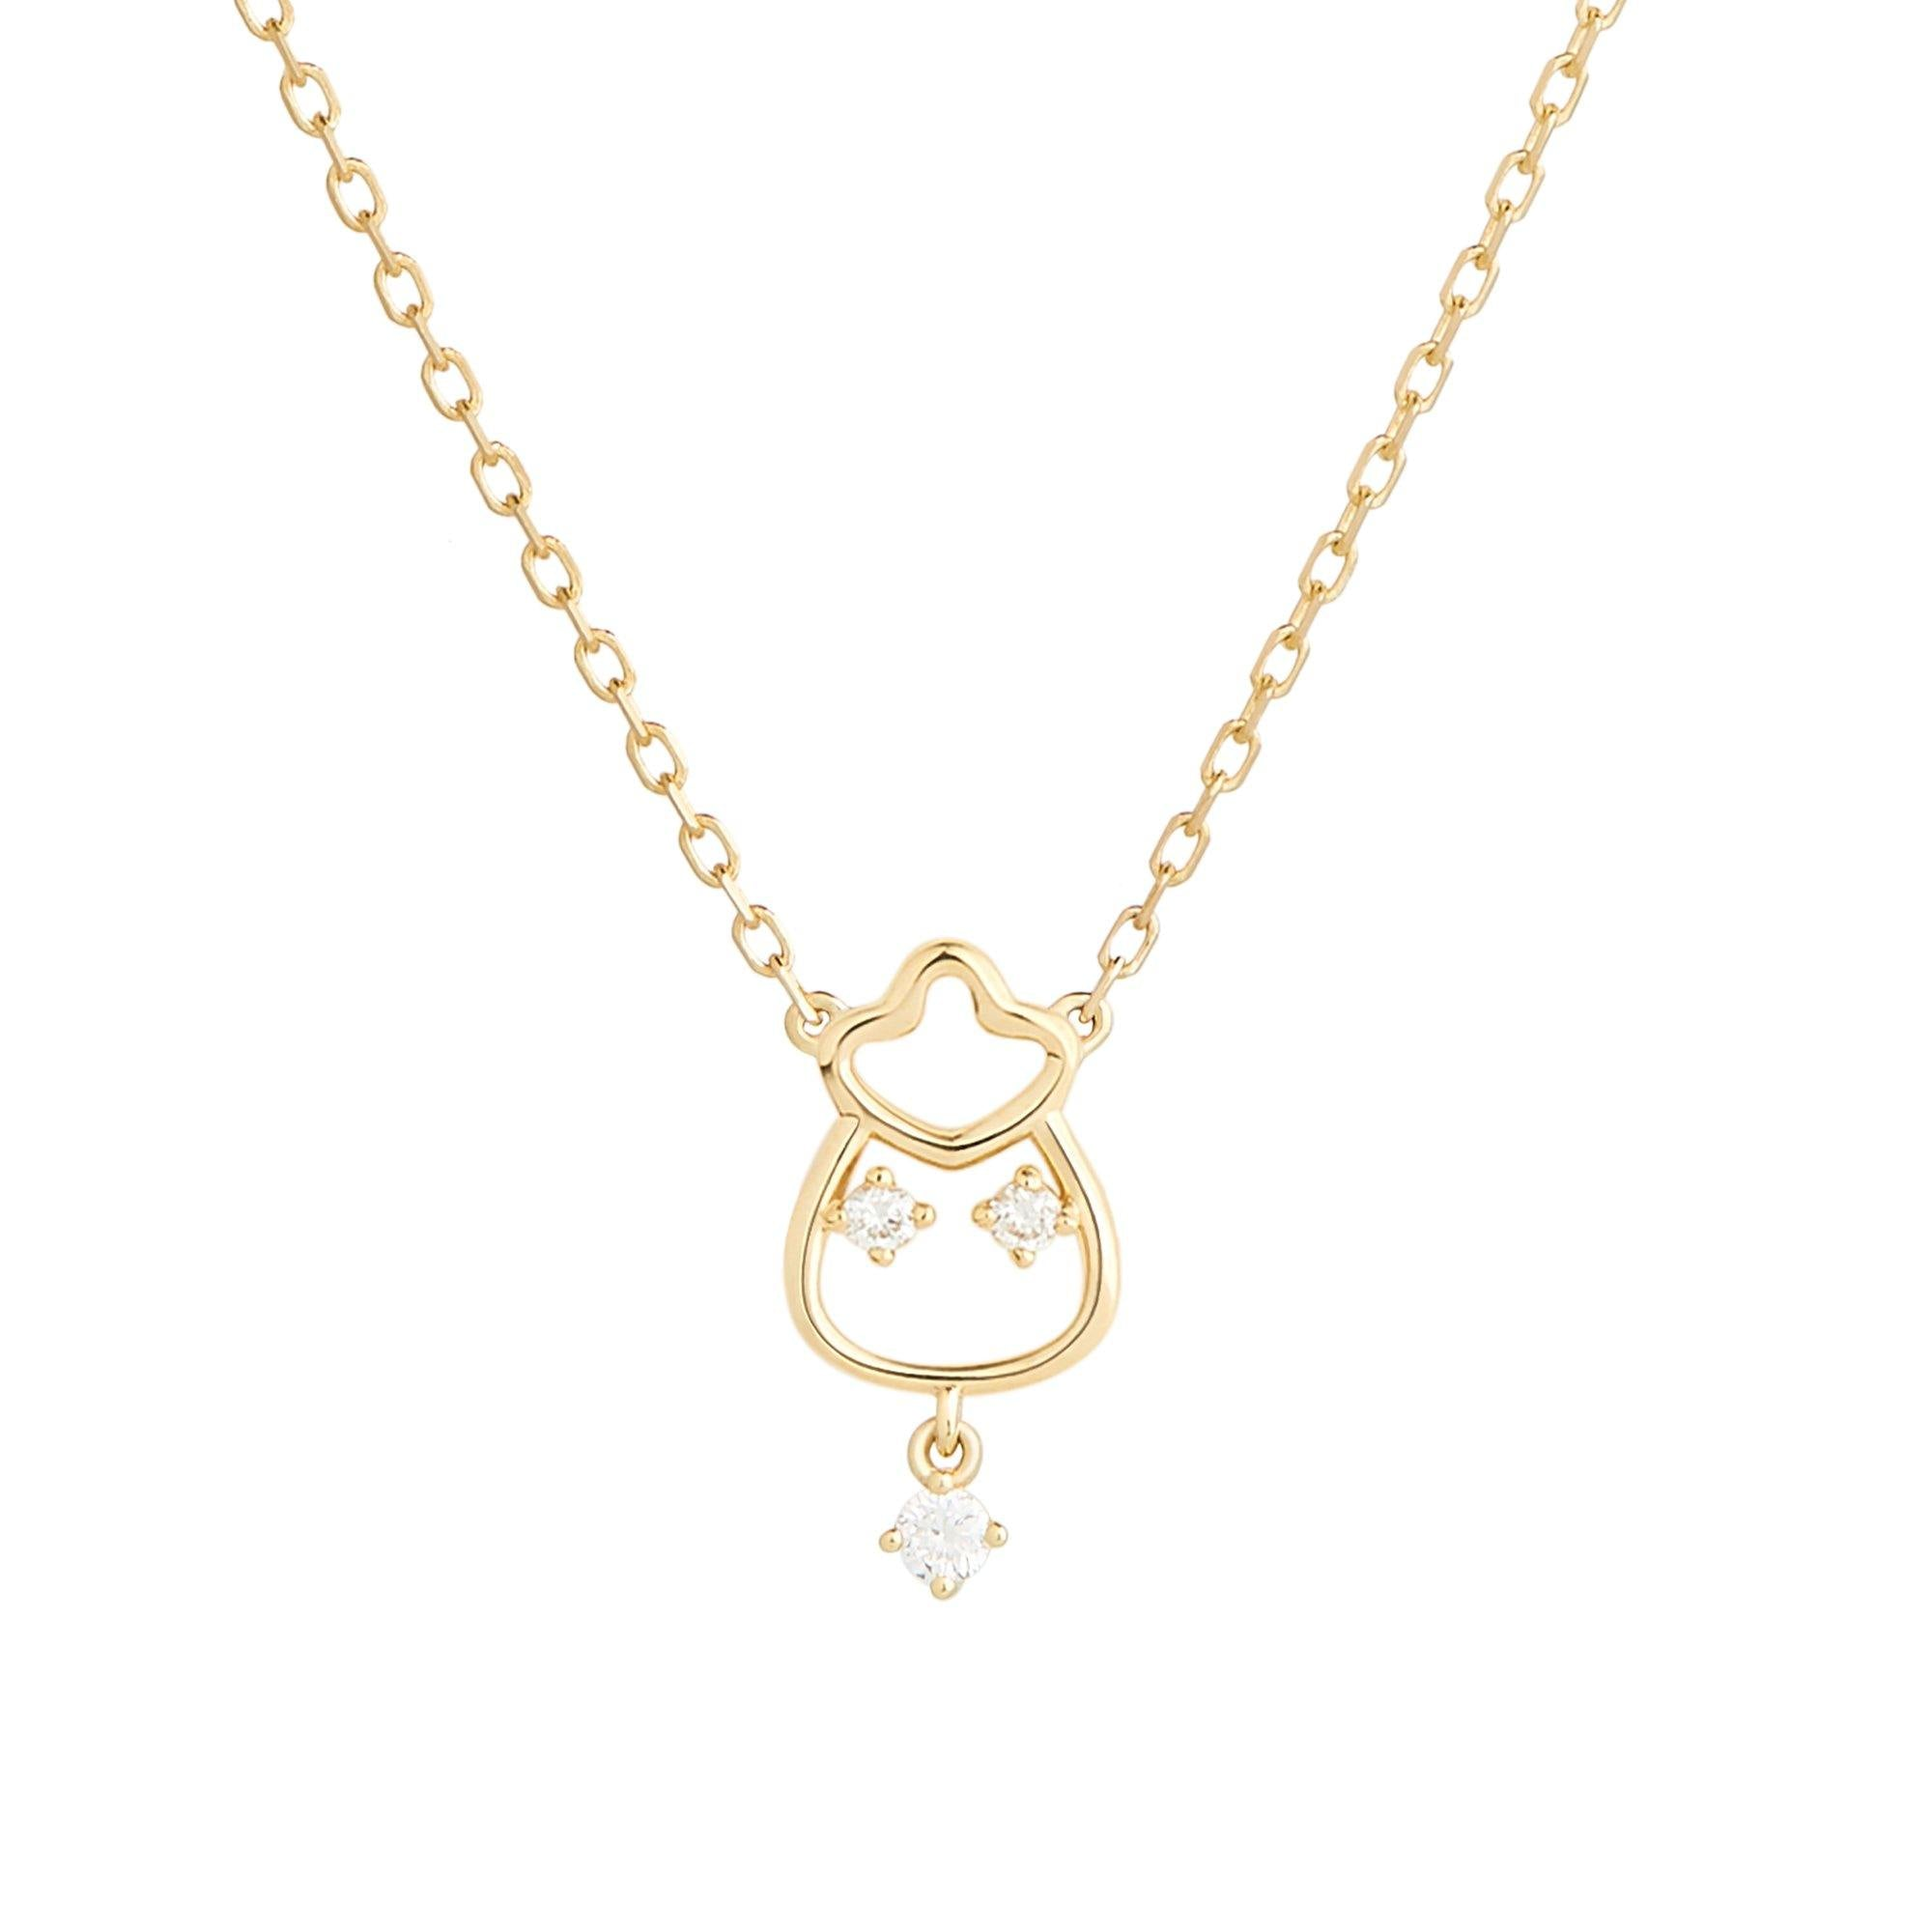 Scintilla Year of the Rooster Necklace - RUIFIER